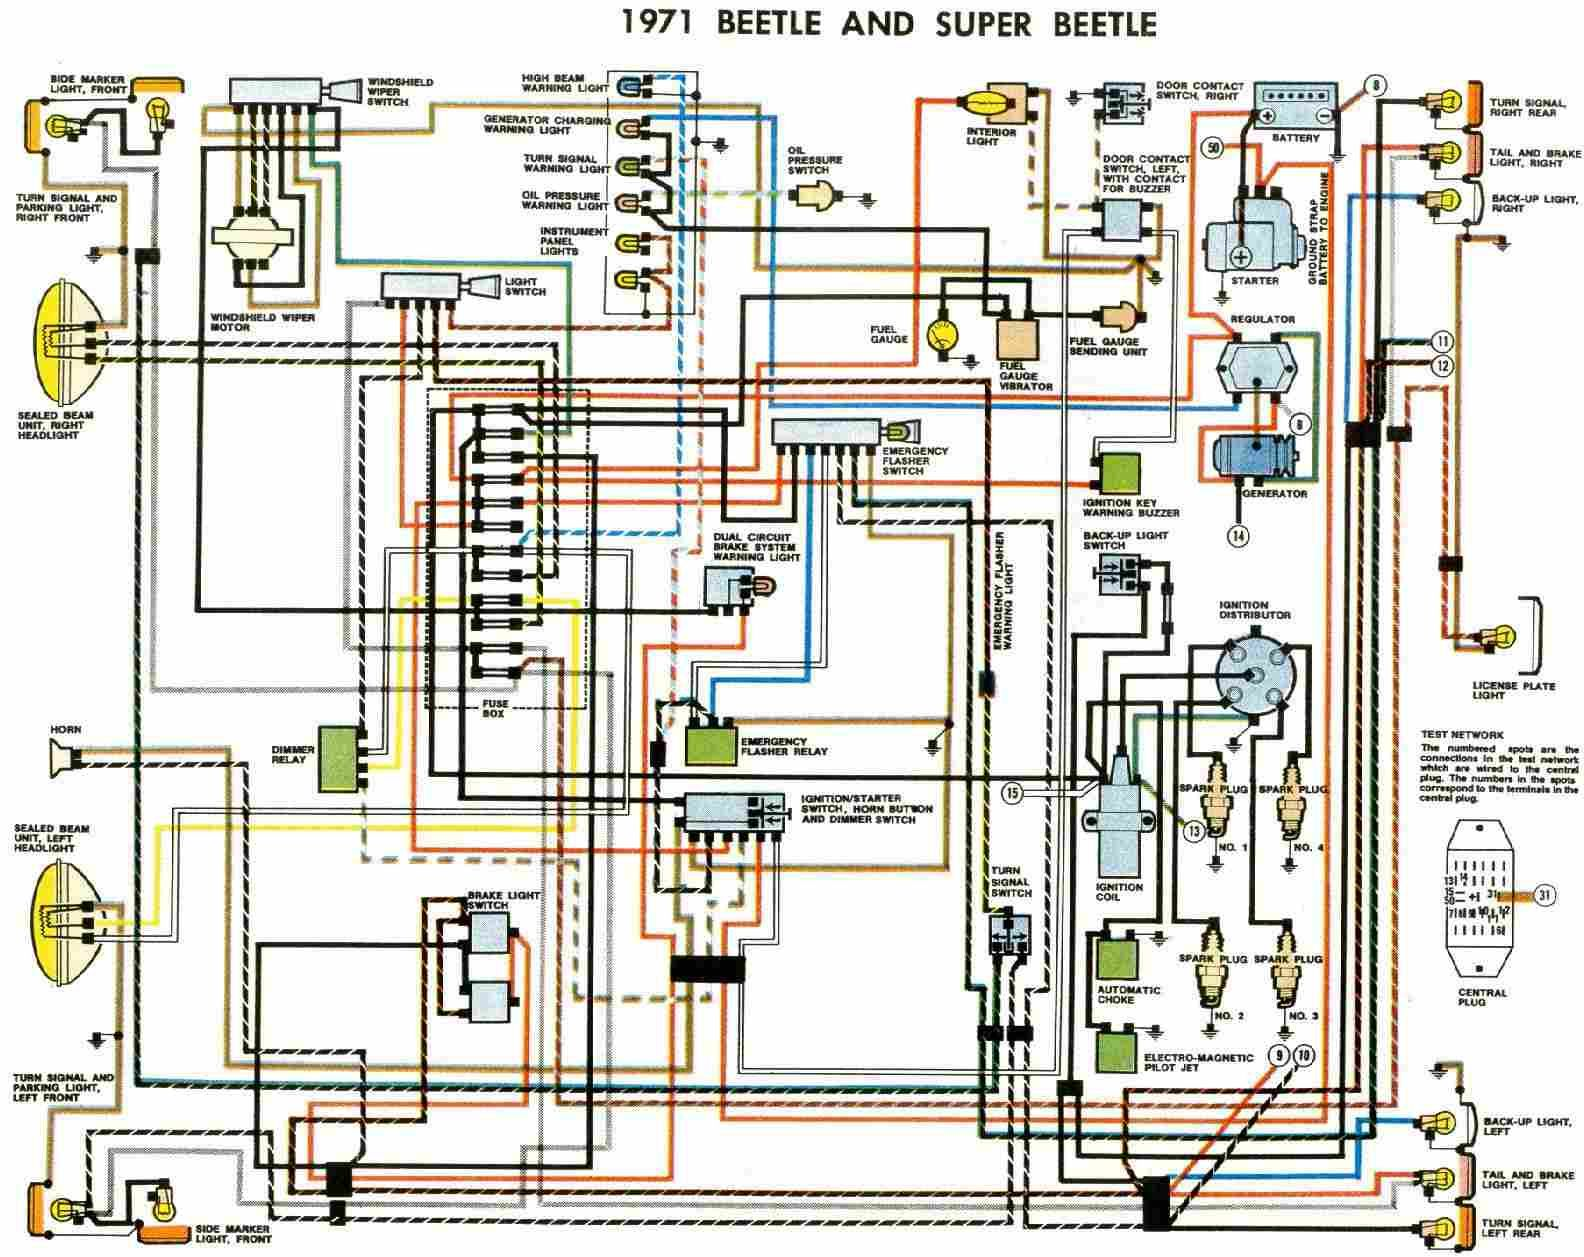 6379f2a777a0eb1b27fdba46670ceb6a free auto wiring diagram 1971 vw beetle and super beetle byocar 1971 vw bus wiring diagram at bayanpartner.co